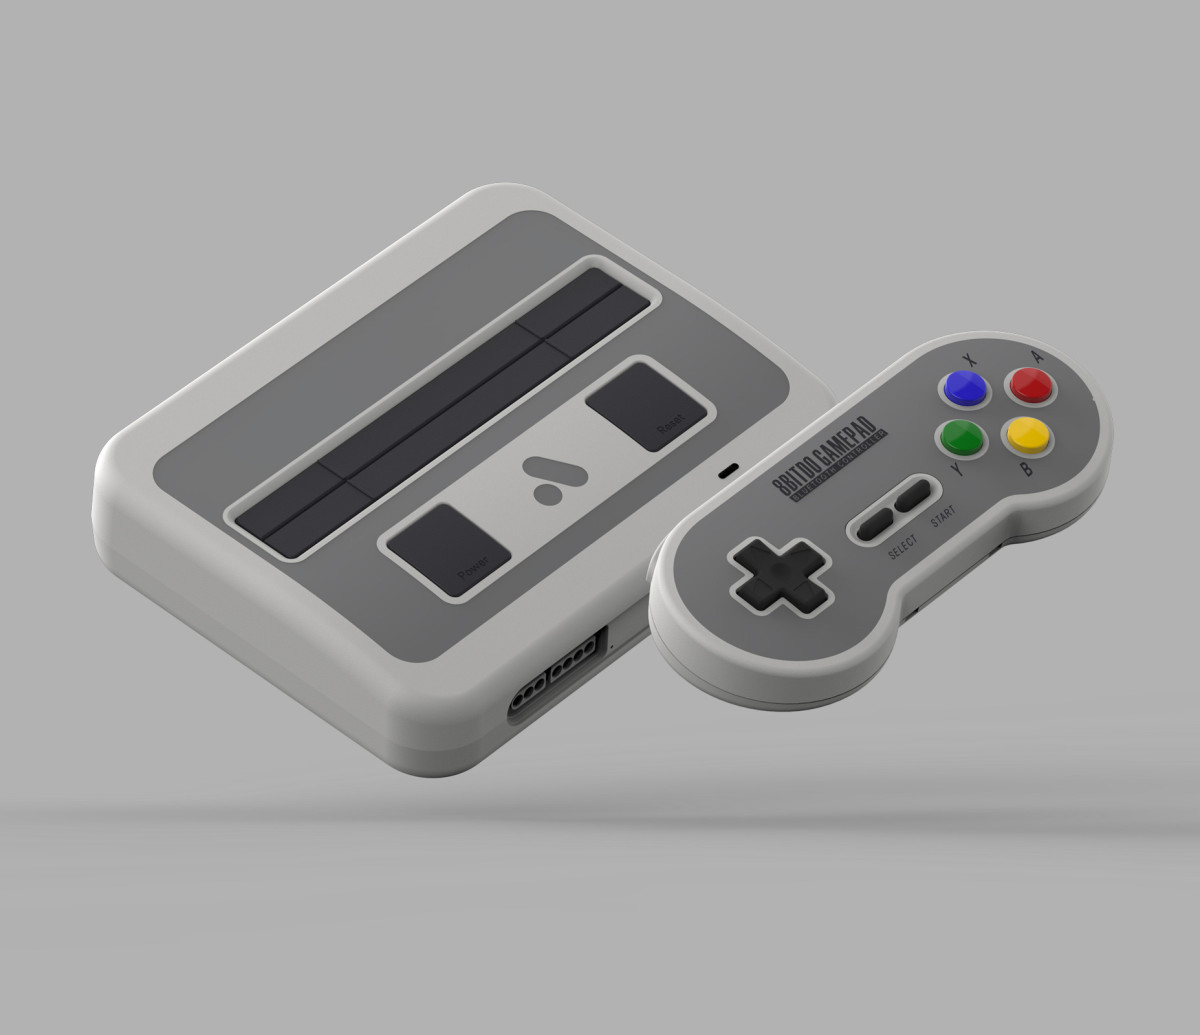 Analogue Super Nt Famicom